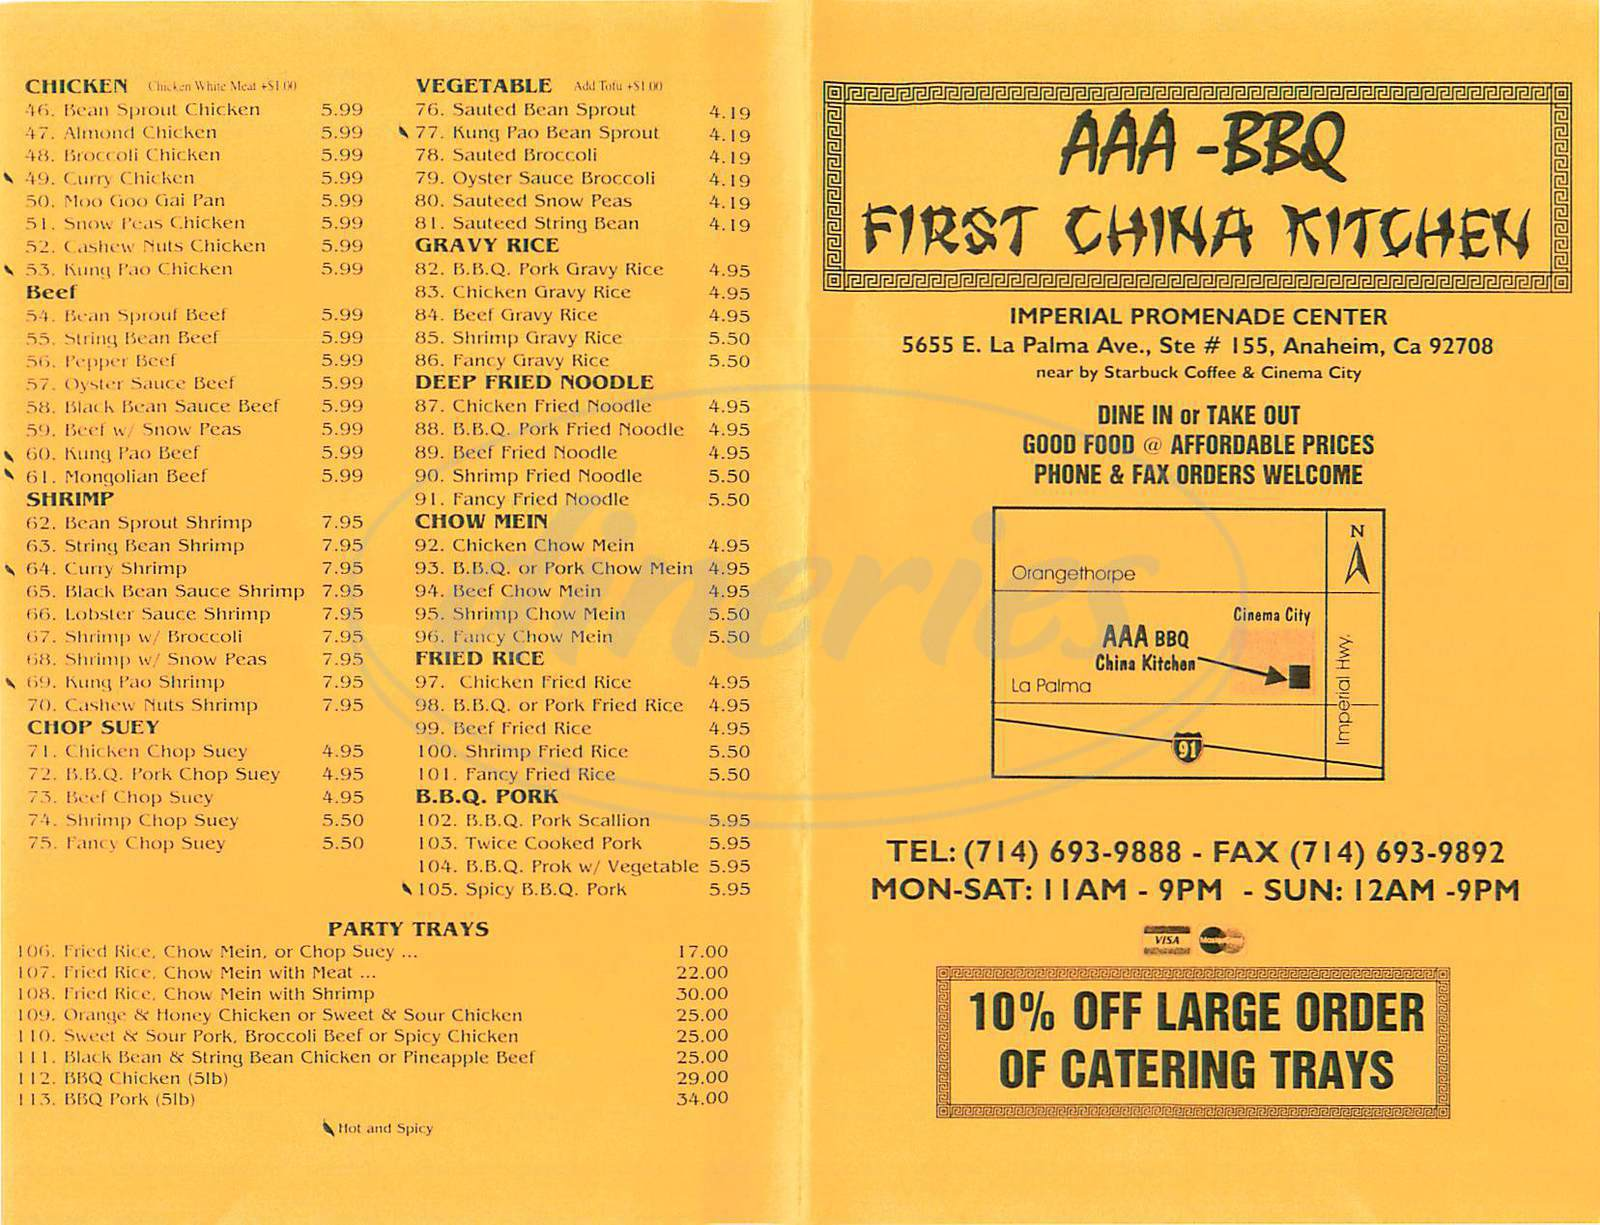 Menu For AAA BBQ First China Kitchen